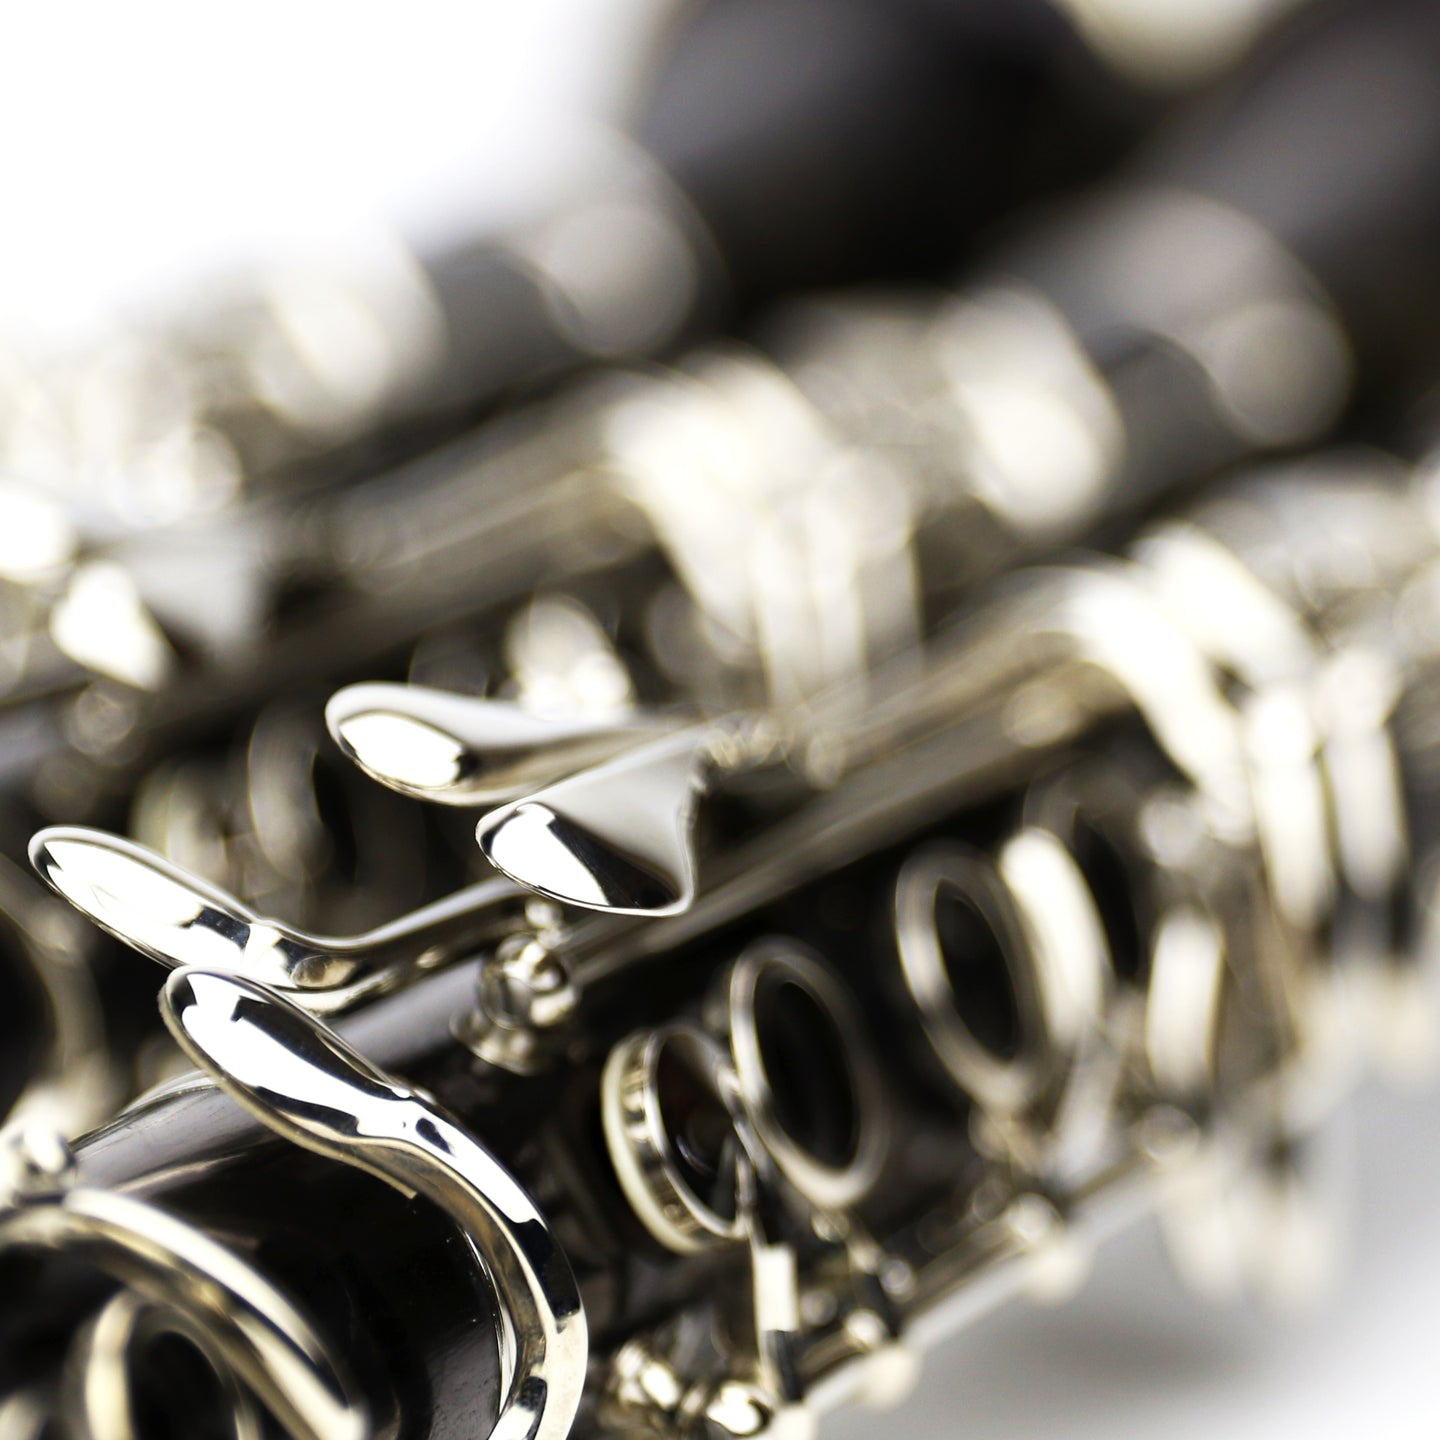 shop our used Oboes, clarinets, and bassoons